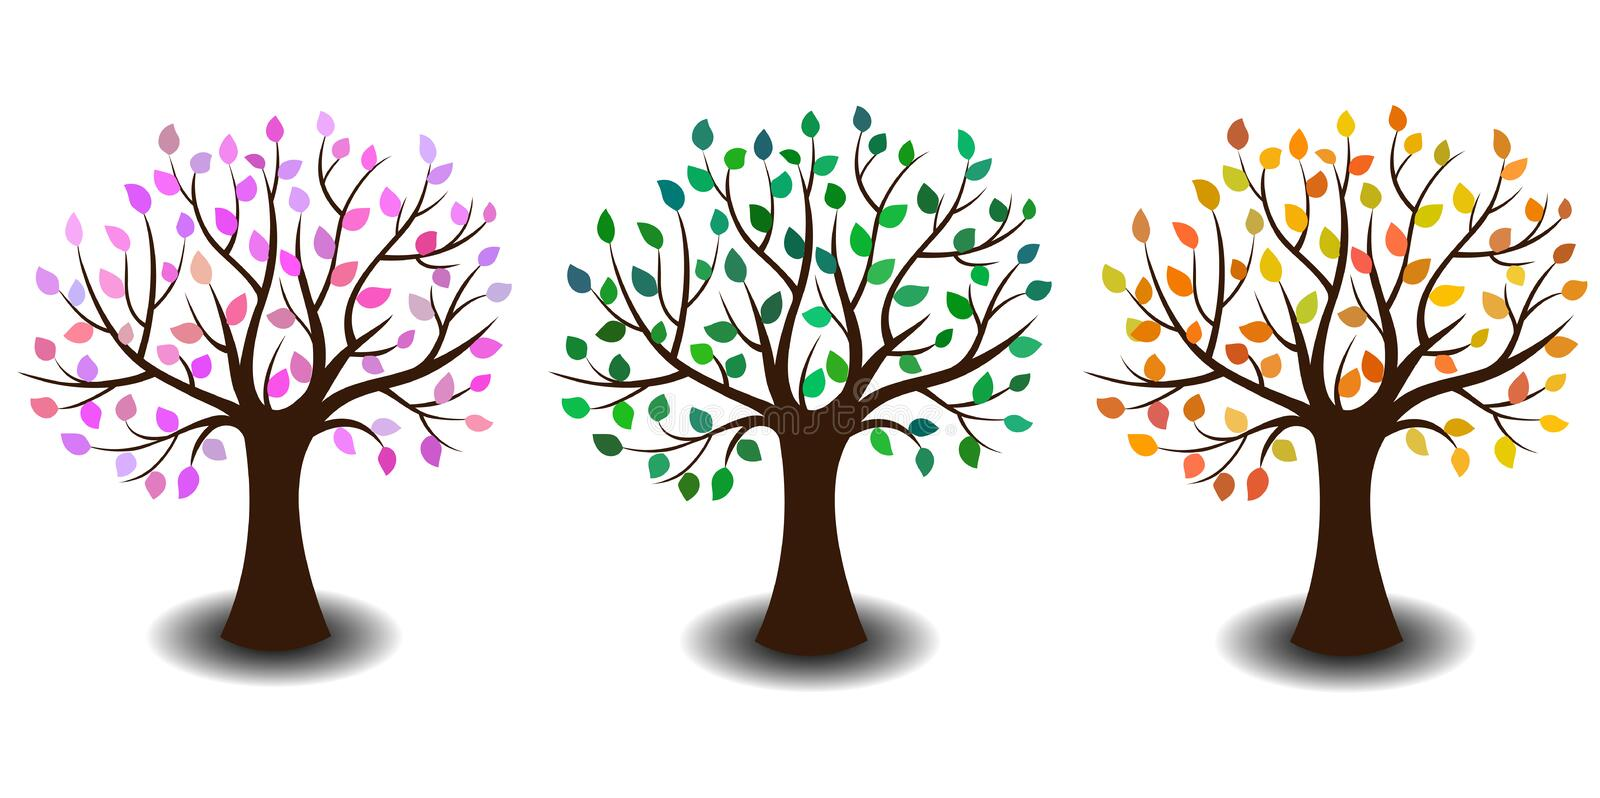 Tree in three variants stock image